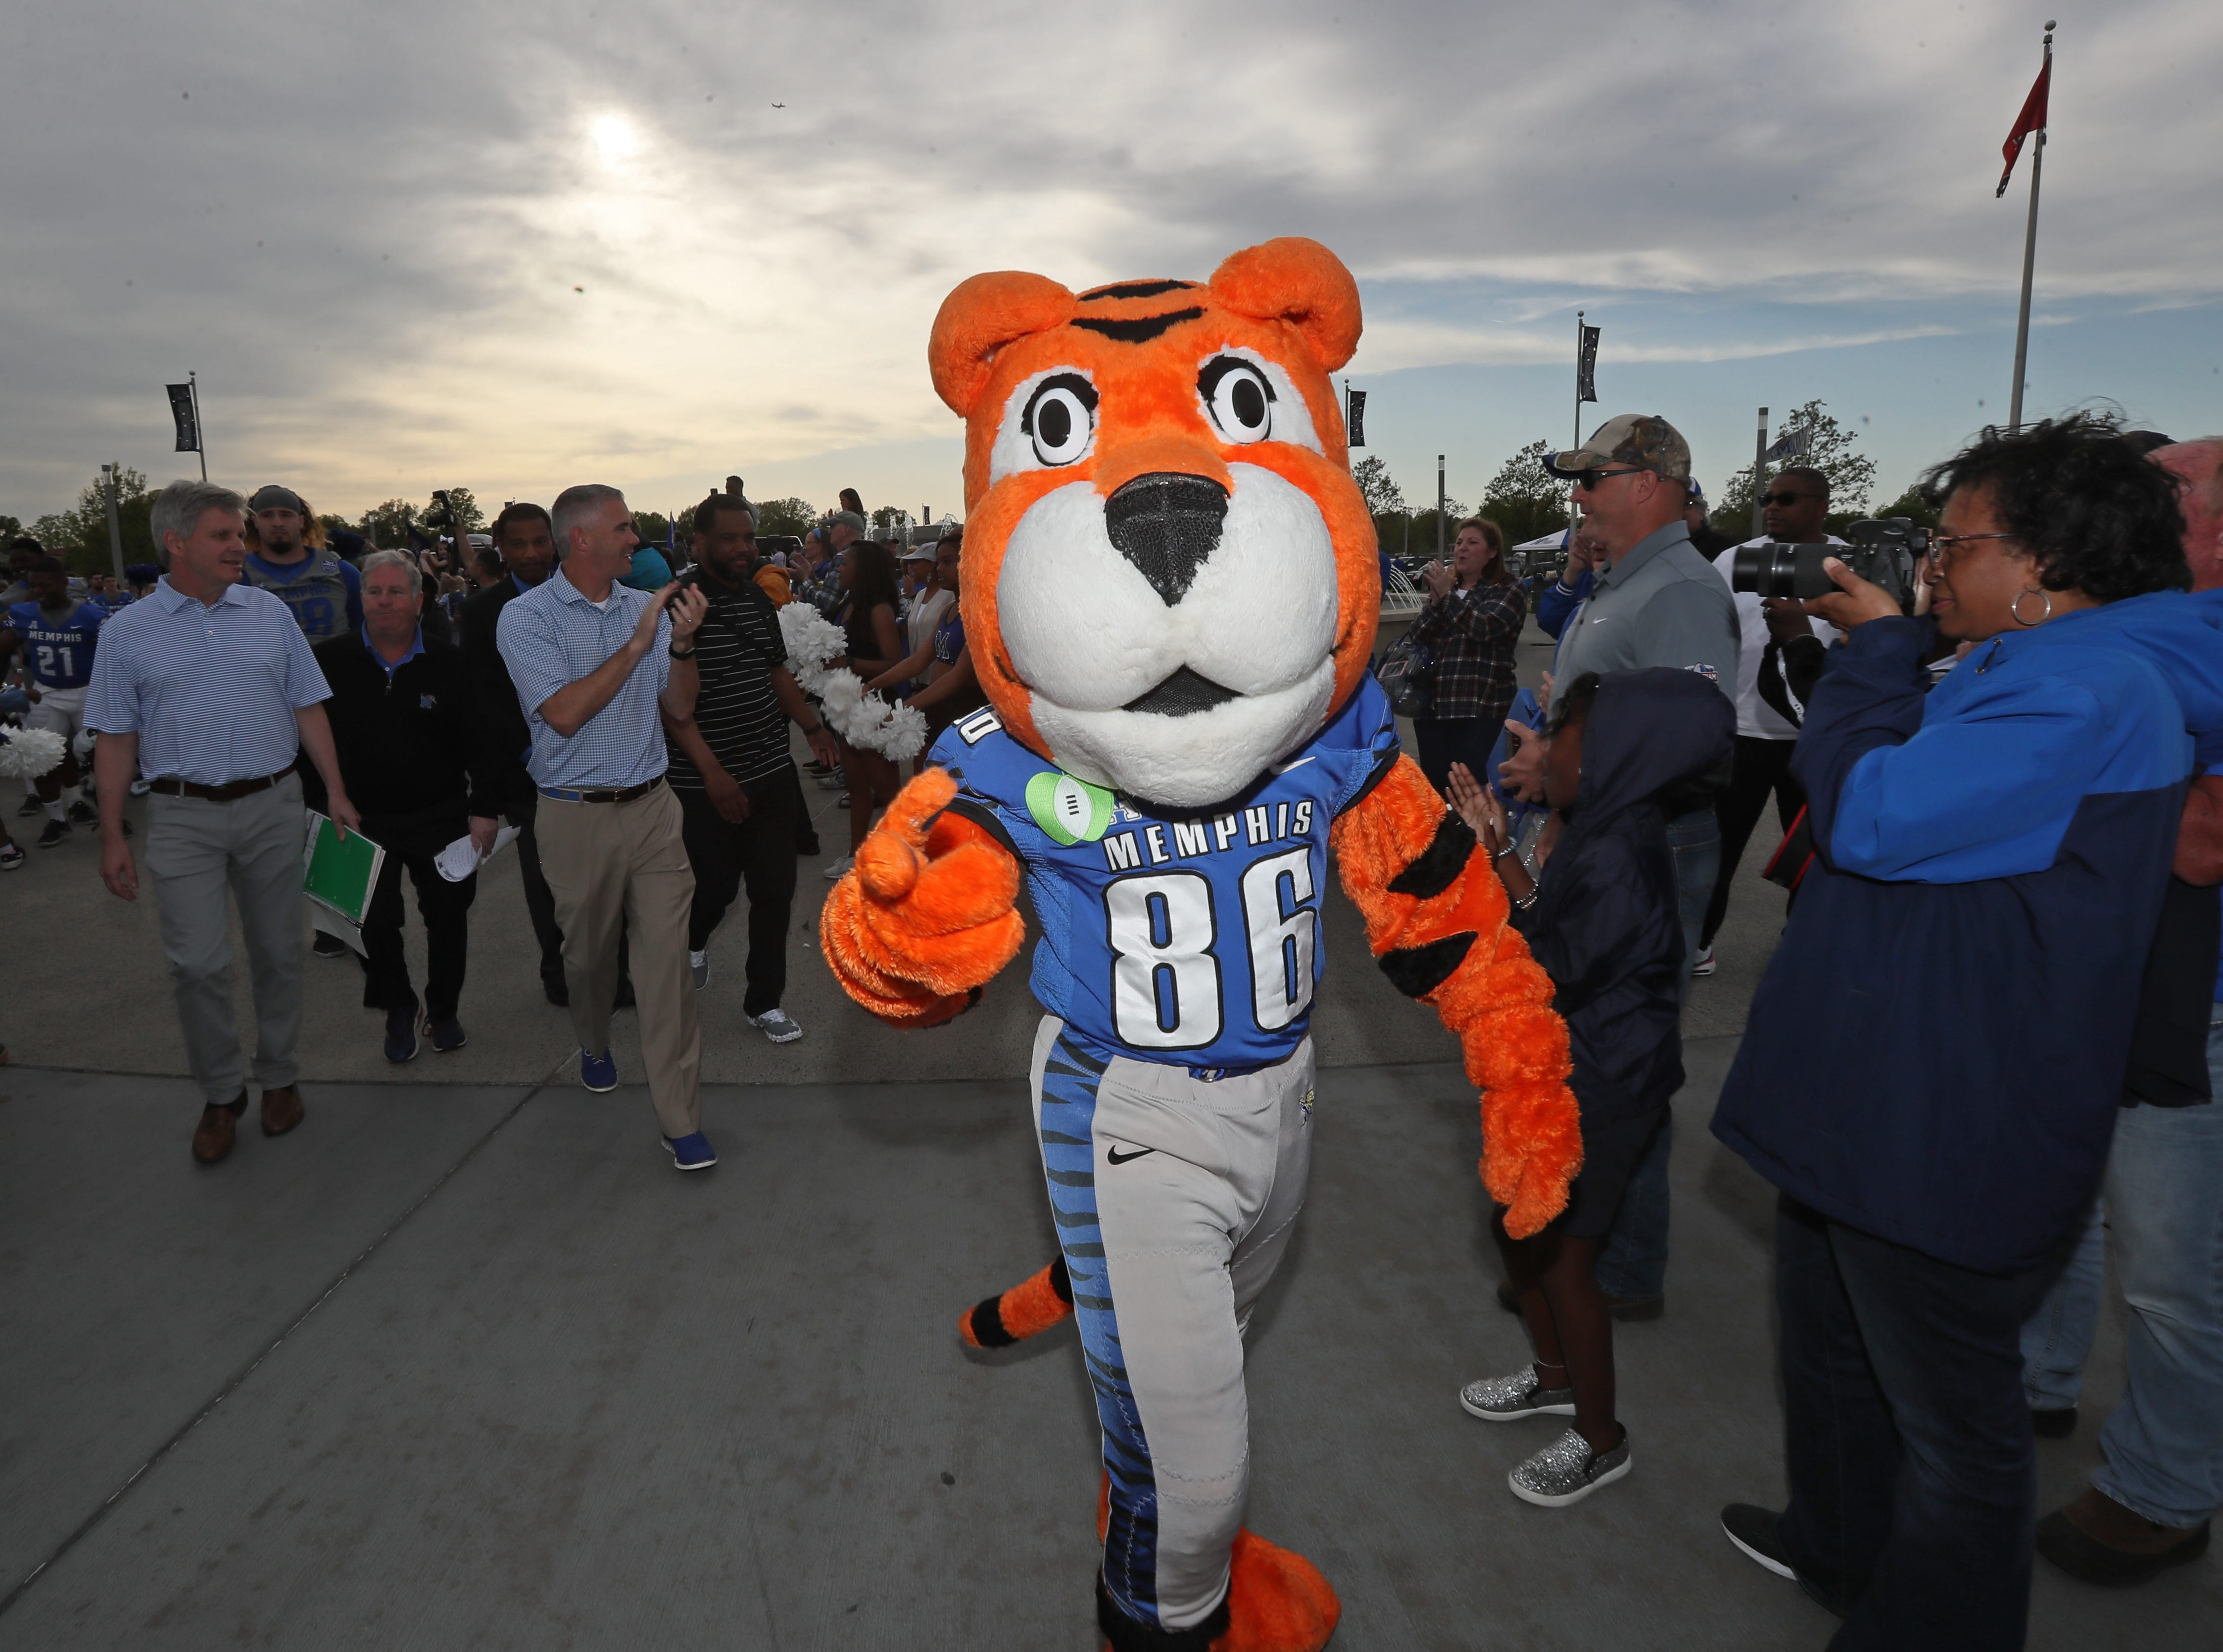 Tigers mascot Pouncer greets fans before their 'Friday Night Stripes' spring game at Liberty Bowl Memorial Stadium on Friday, April 12, 2019.